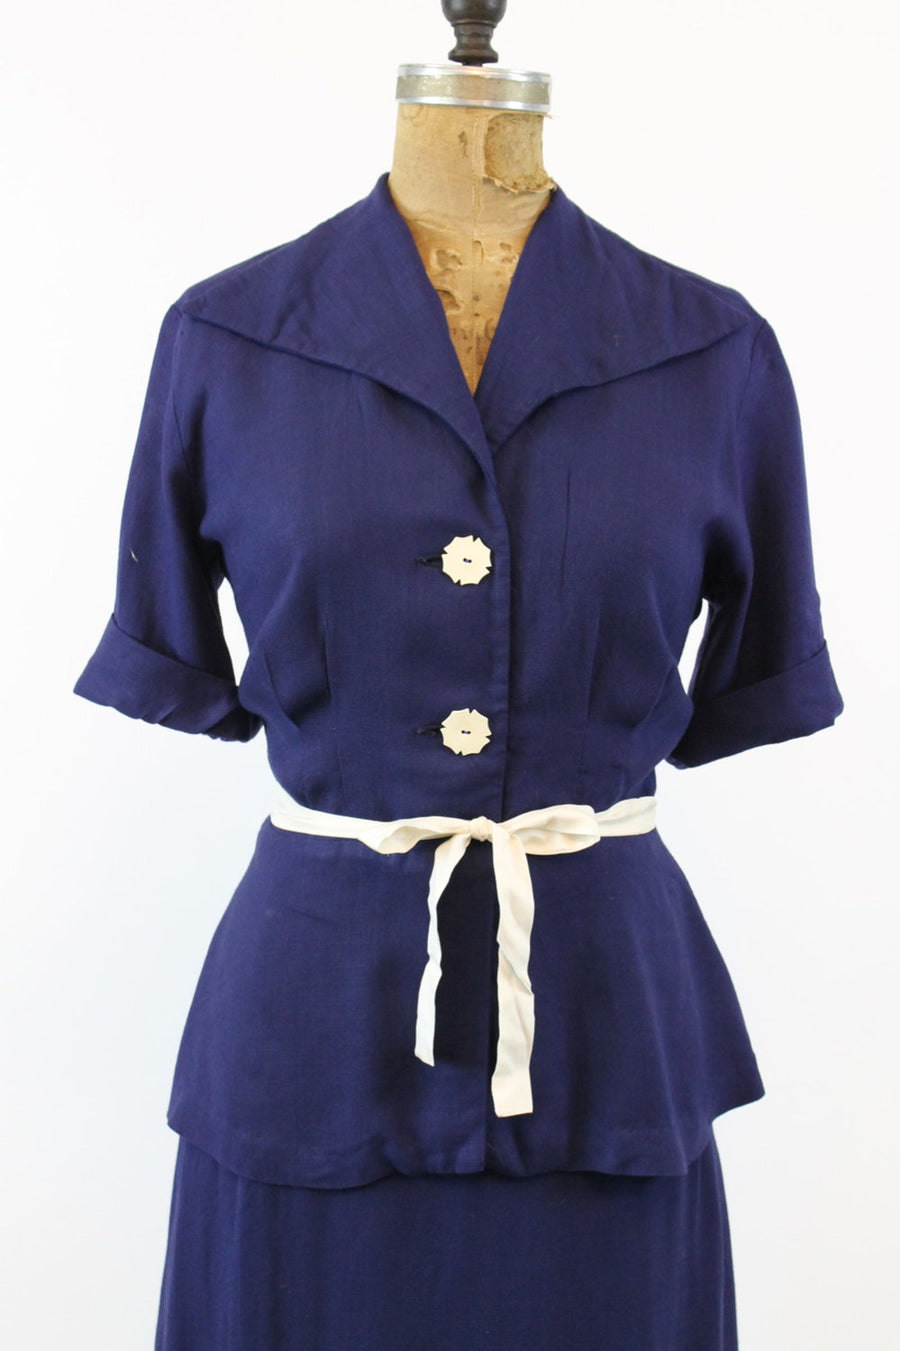 1940s linen rayon suit xs | vintage peplum jacket and skirt